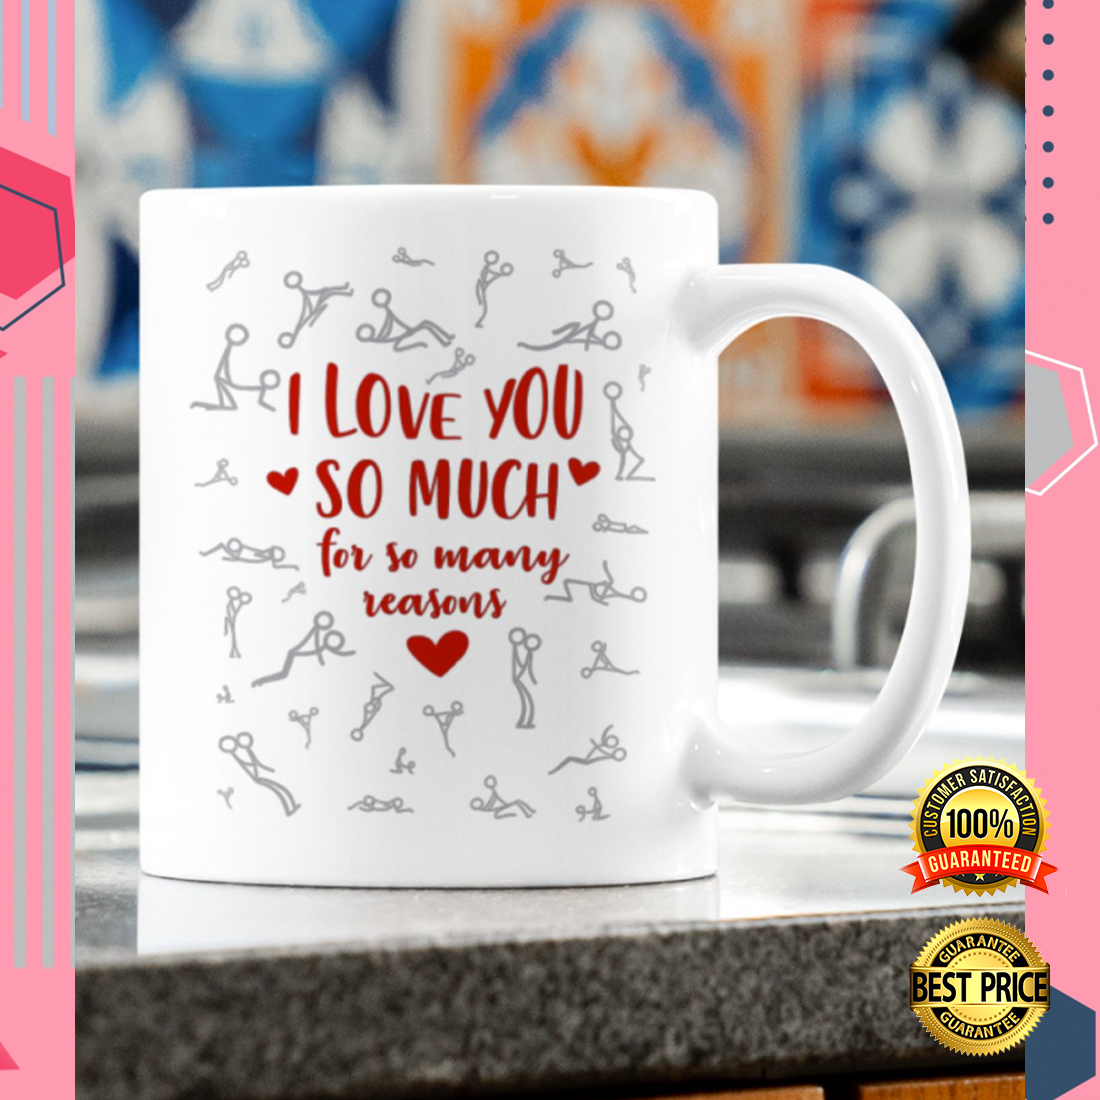 I LOVE YOU SO MUCH FOR SO MANY REASONS MUG 5